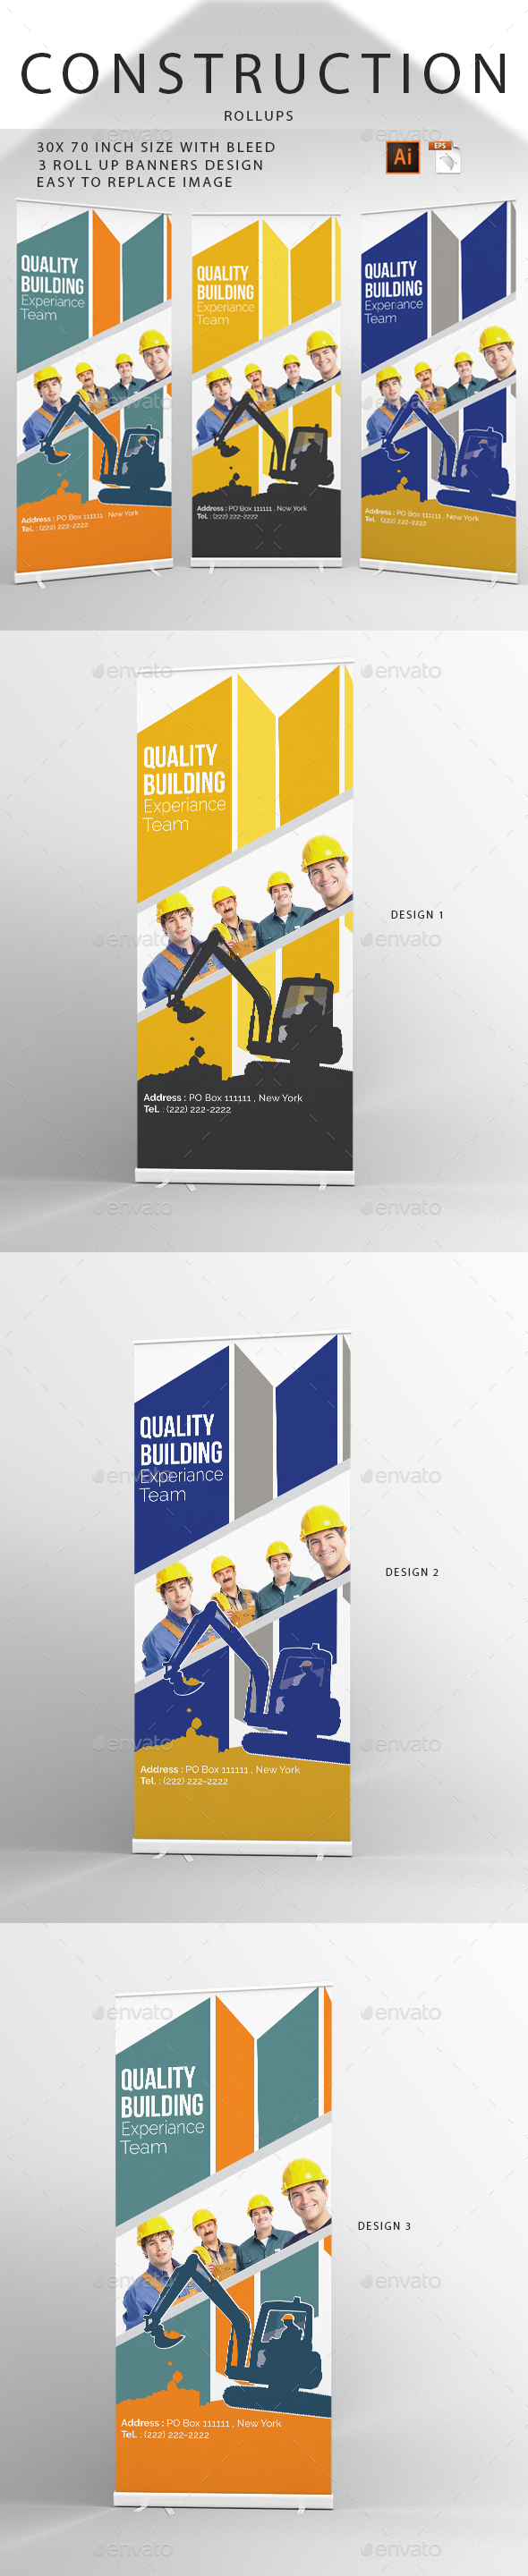 Construction Rollup Banners Template Design - Signage Print Templates